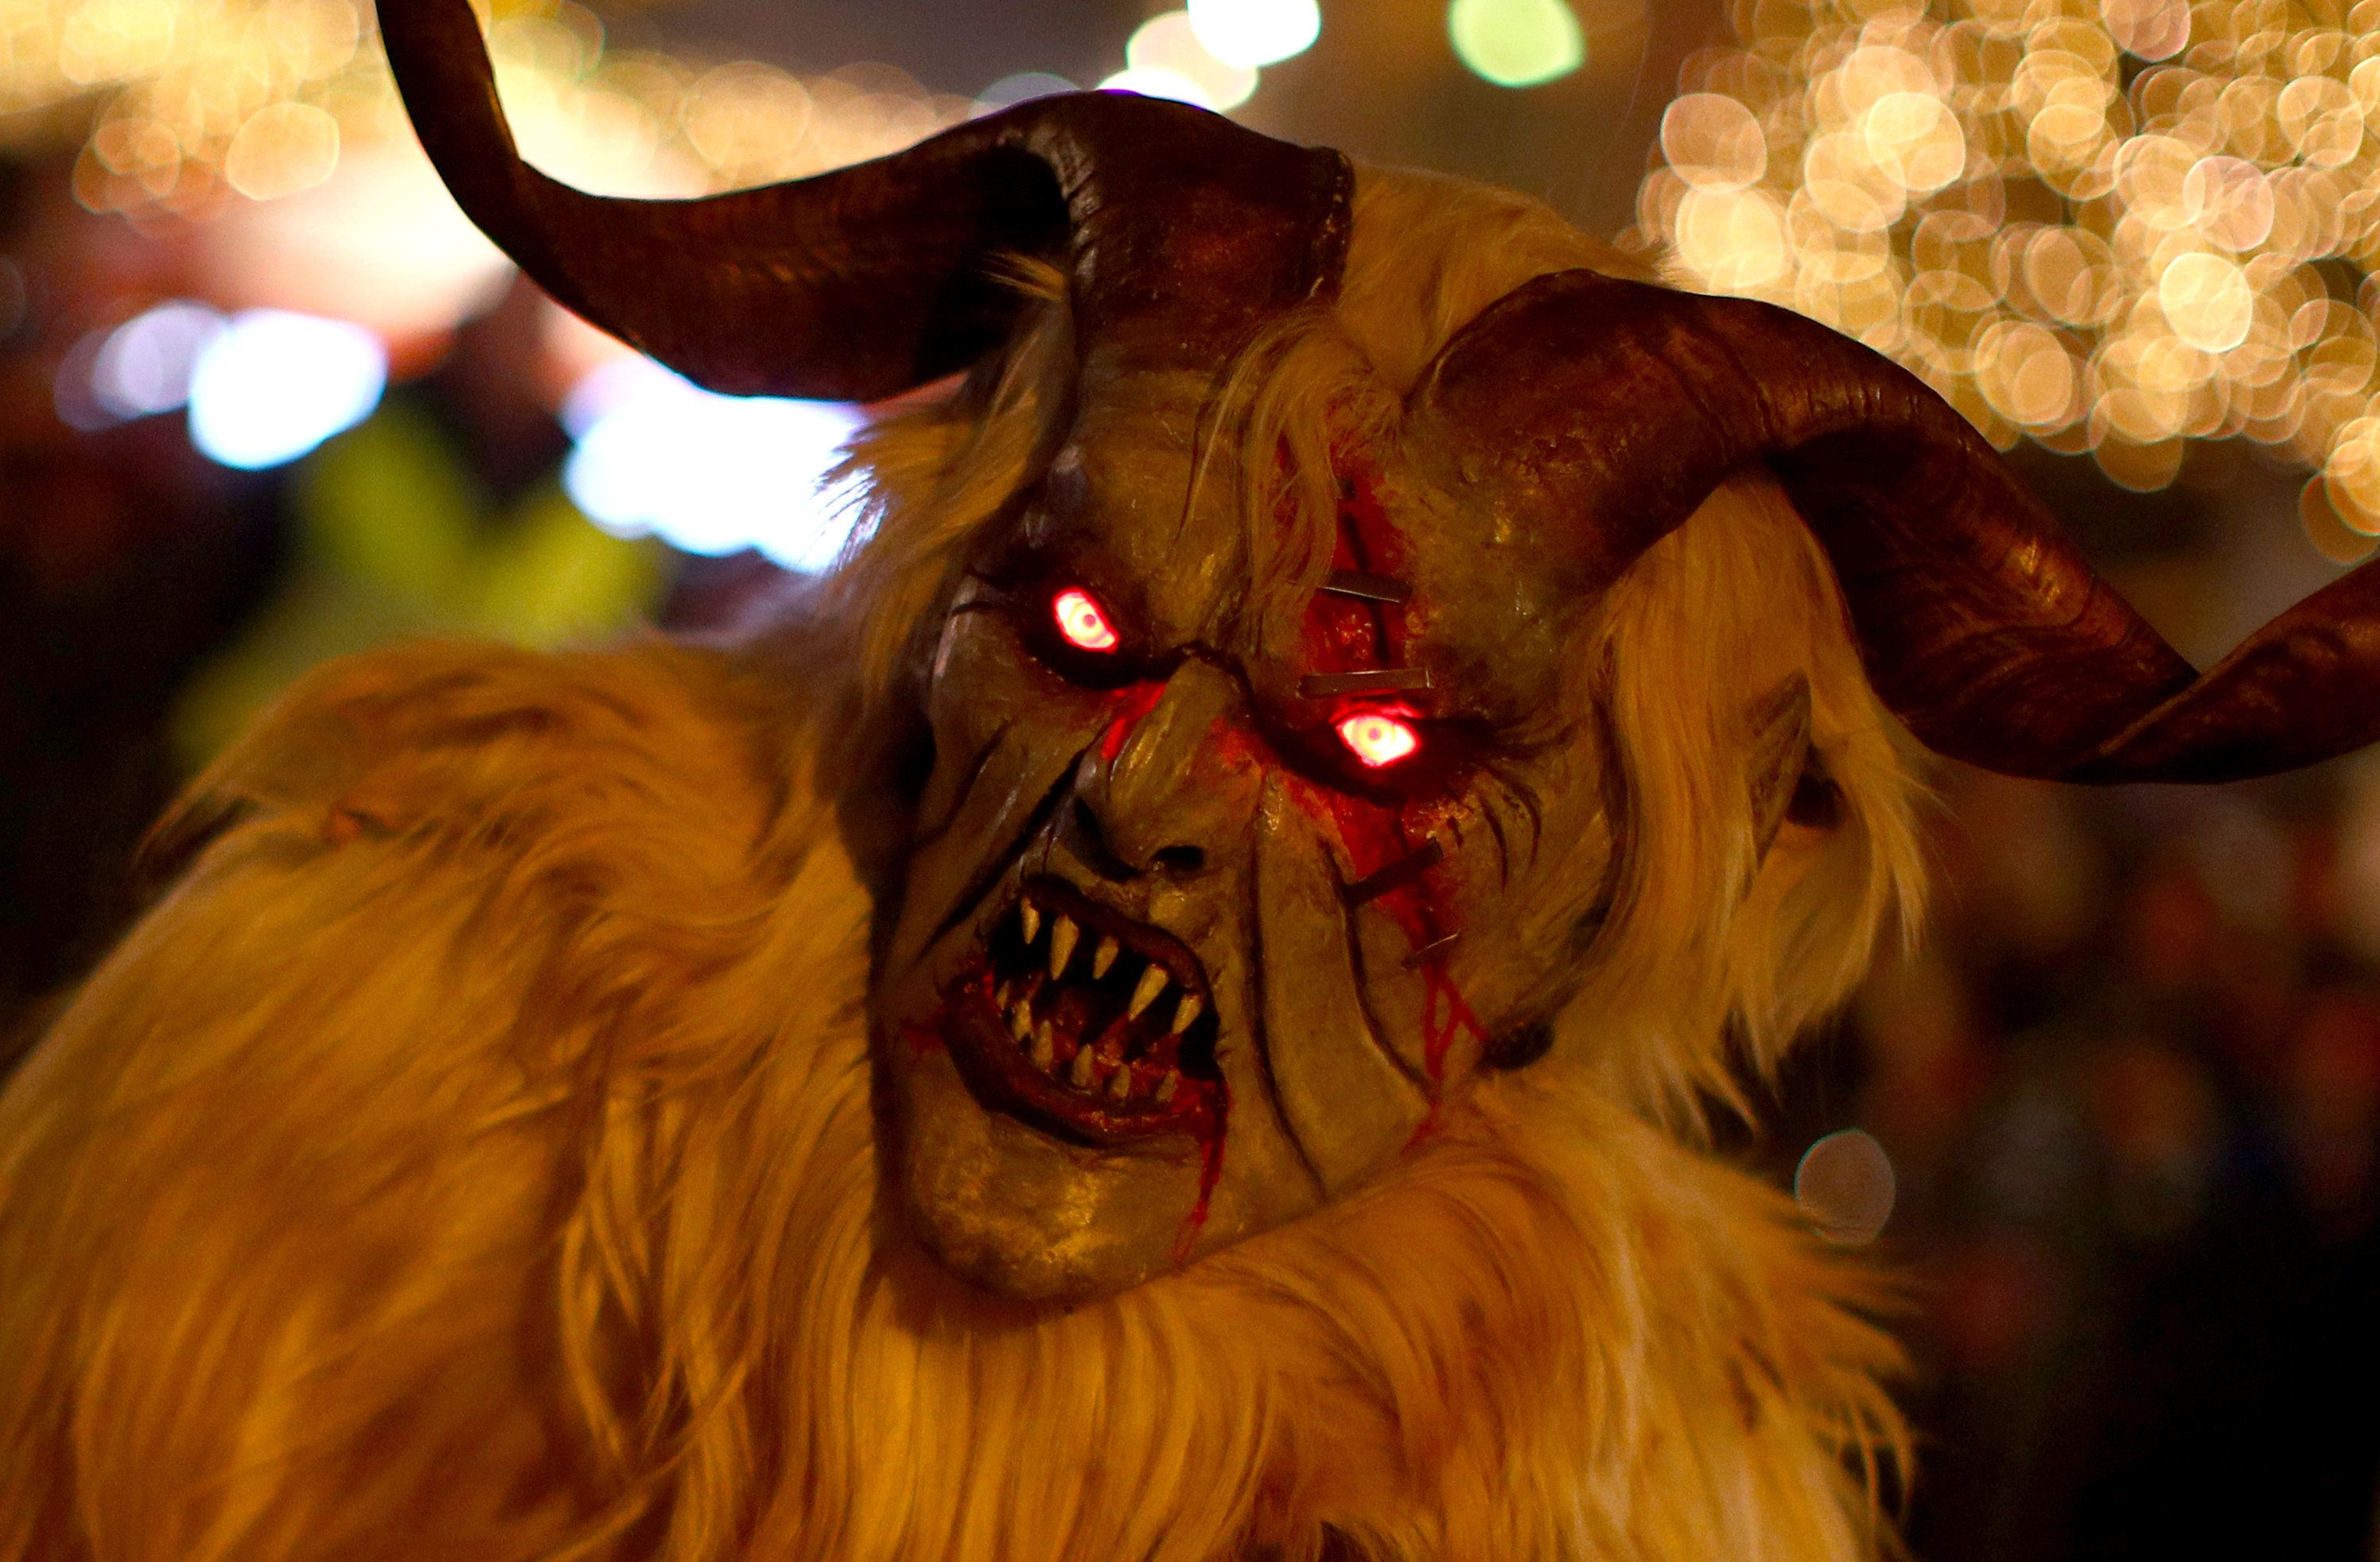 A person costumed as Krampus or Percht, figures from ancient Austrian custom, performs during a Perchten run in Vienna, Austria, December 2, 2018.  REUTERS/Lisi Niesner